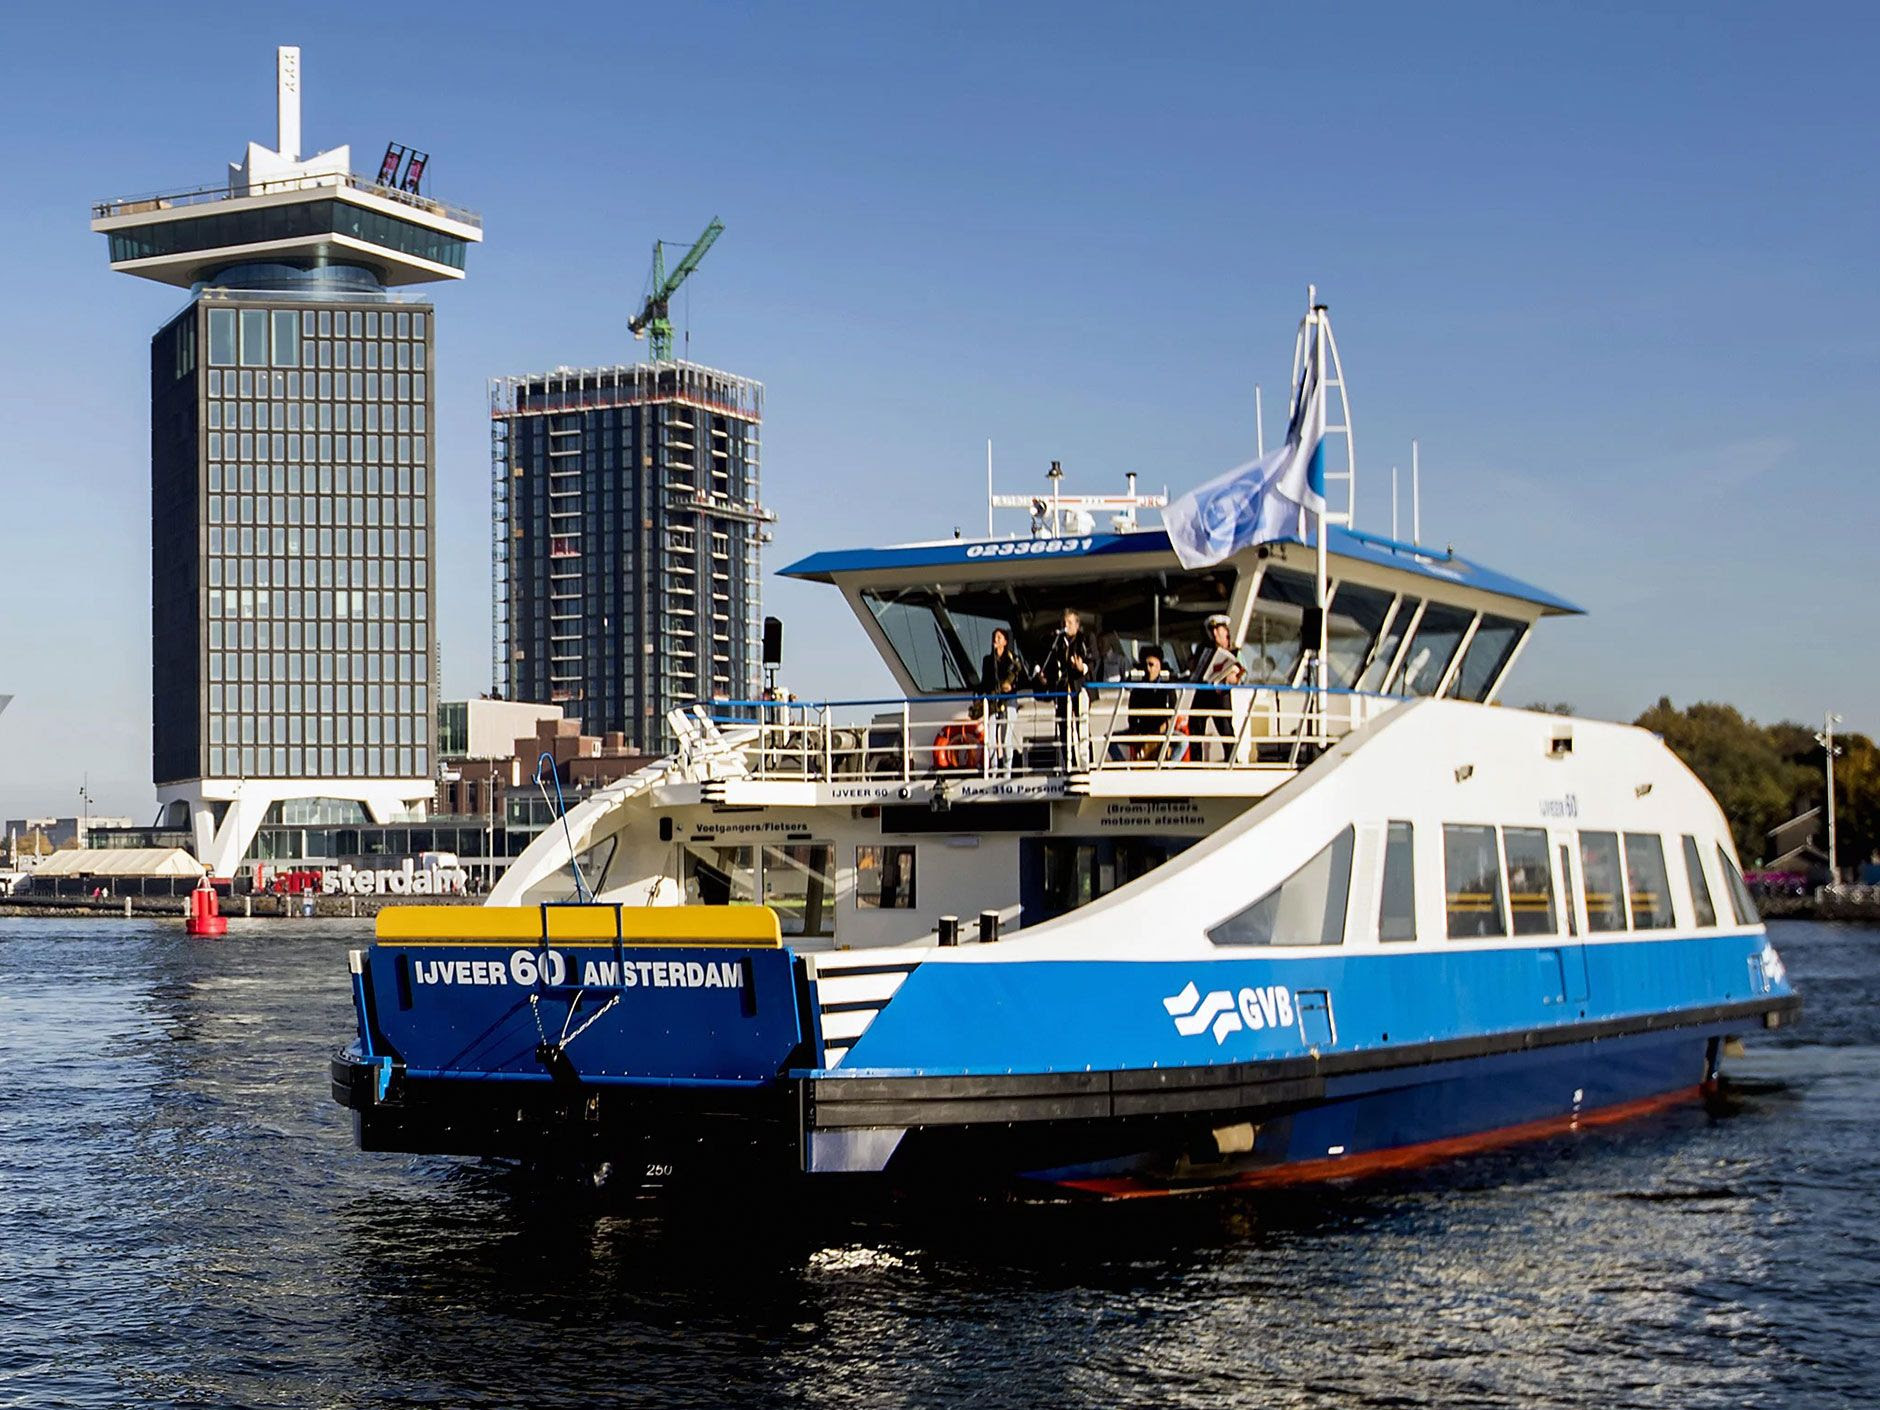 The hybrid <i>IJveer 60</i> carries passengers and cars around Amsterdam along with its sister ferry, the <i>IJveer 61</i>.